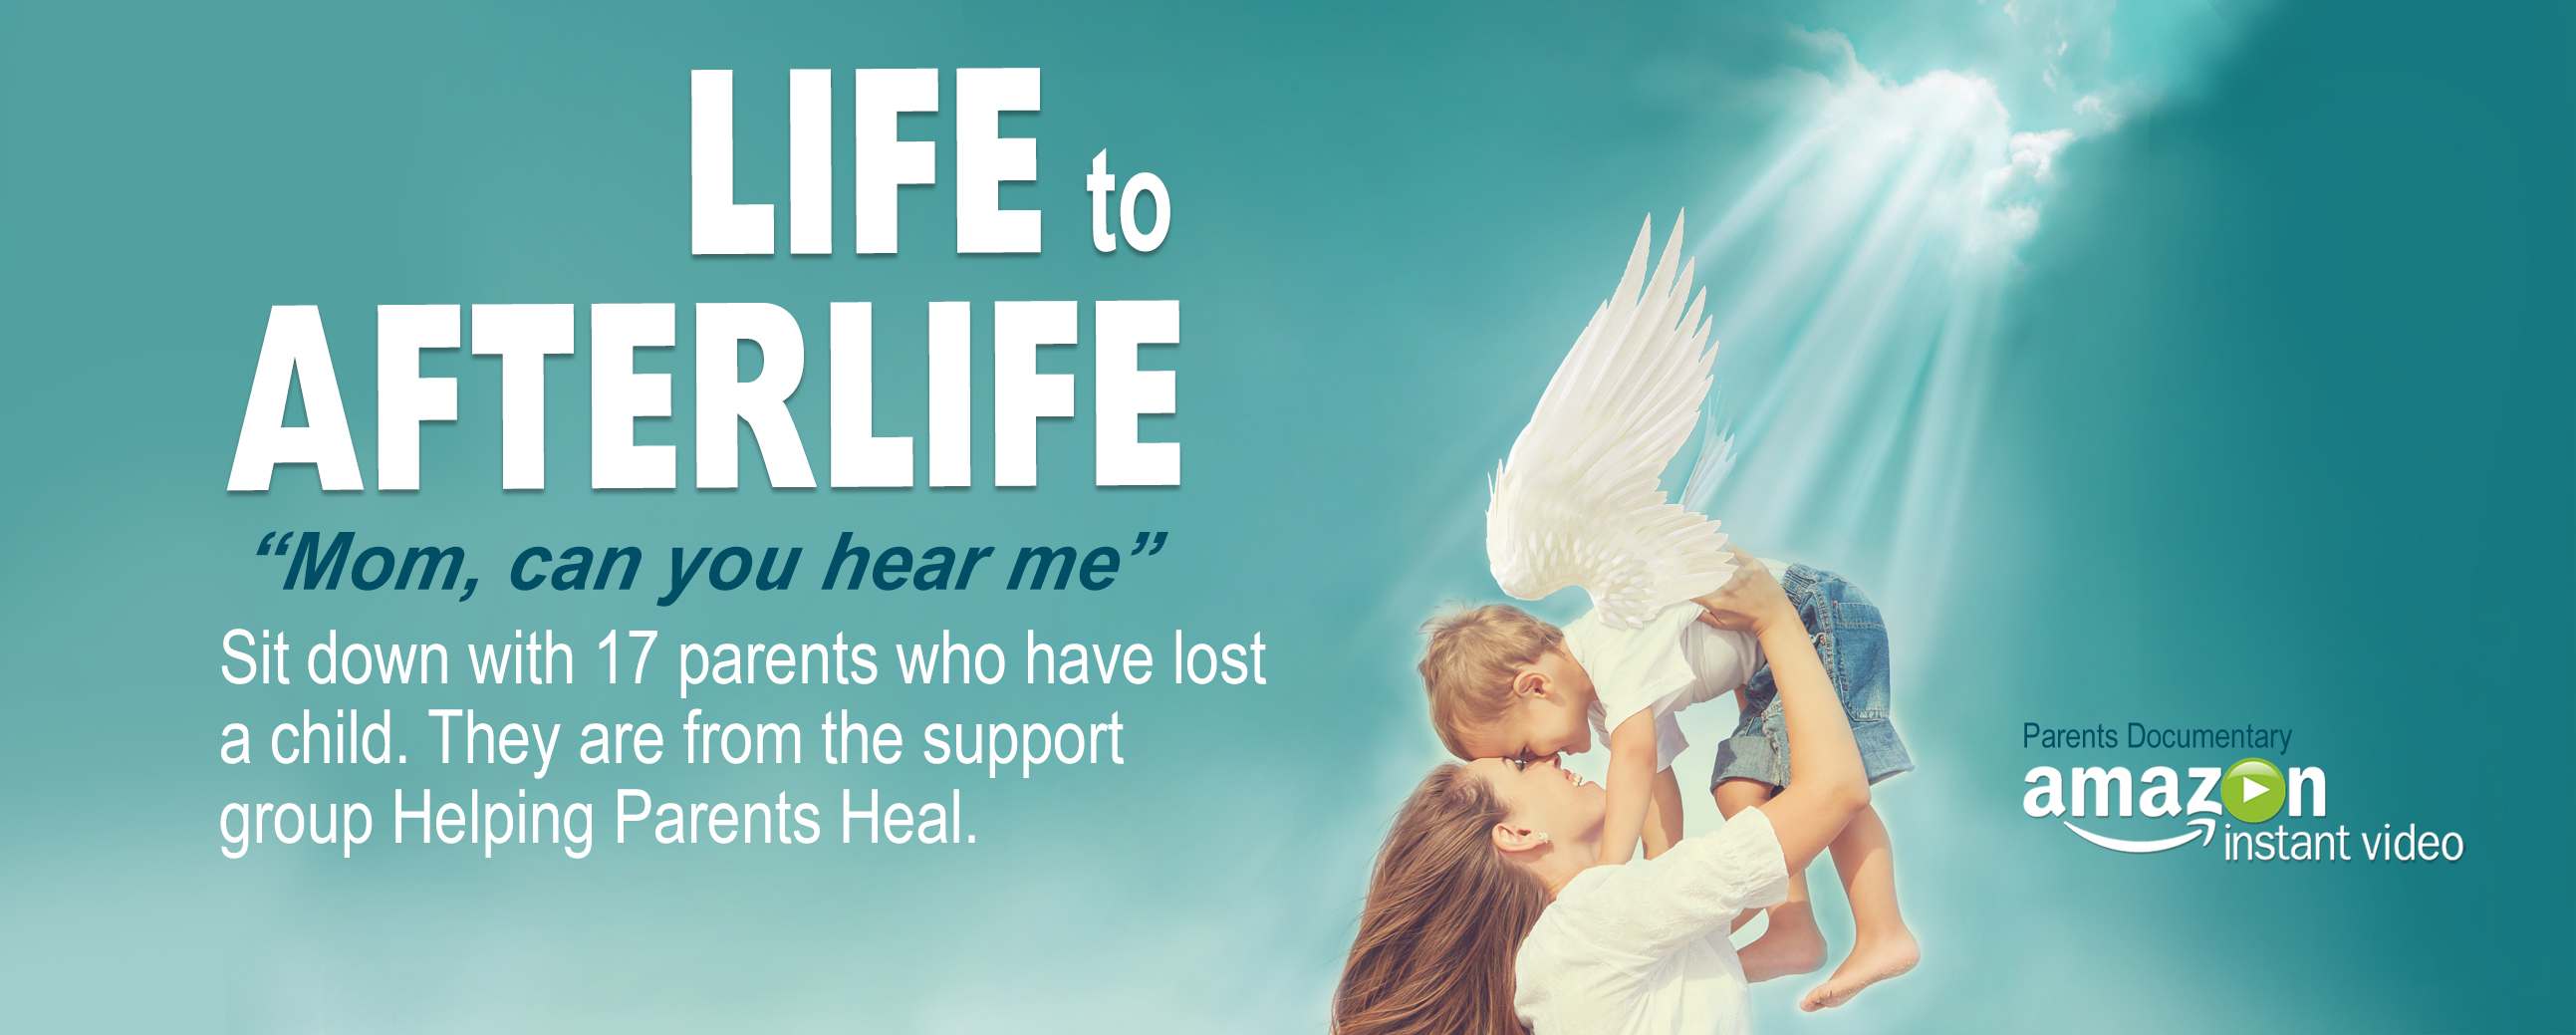 Life to Afterlife, 'Mom, Can You Hear Me?'